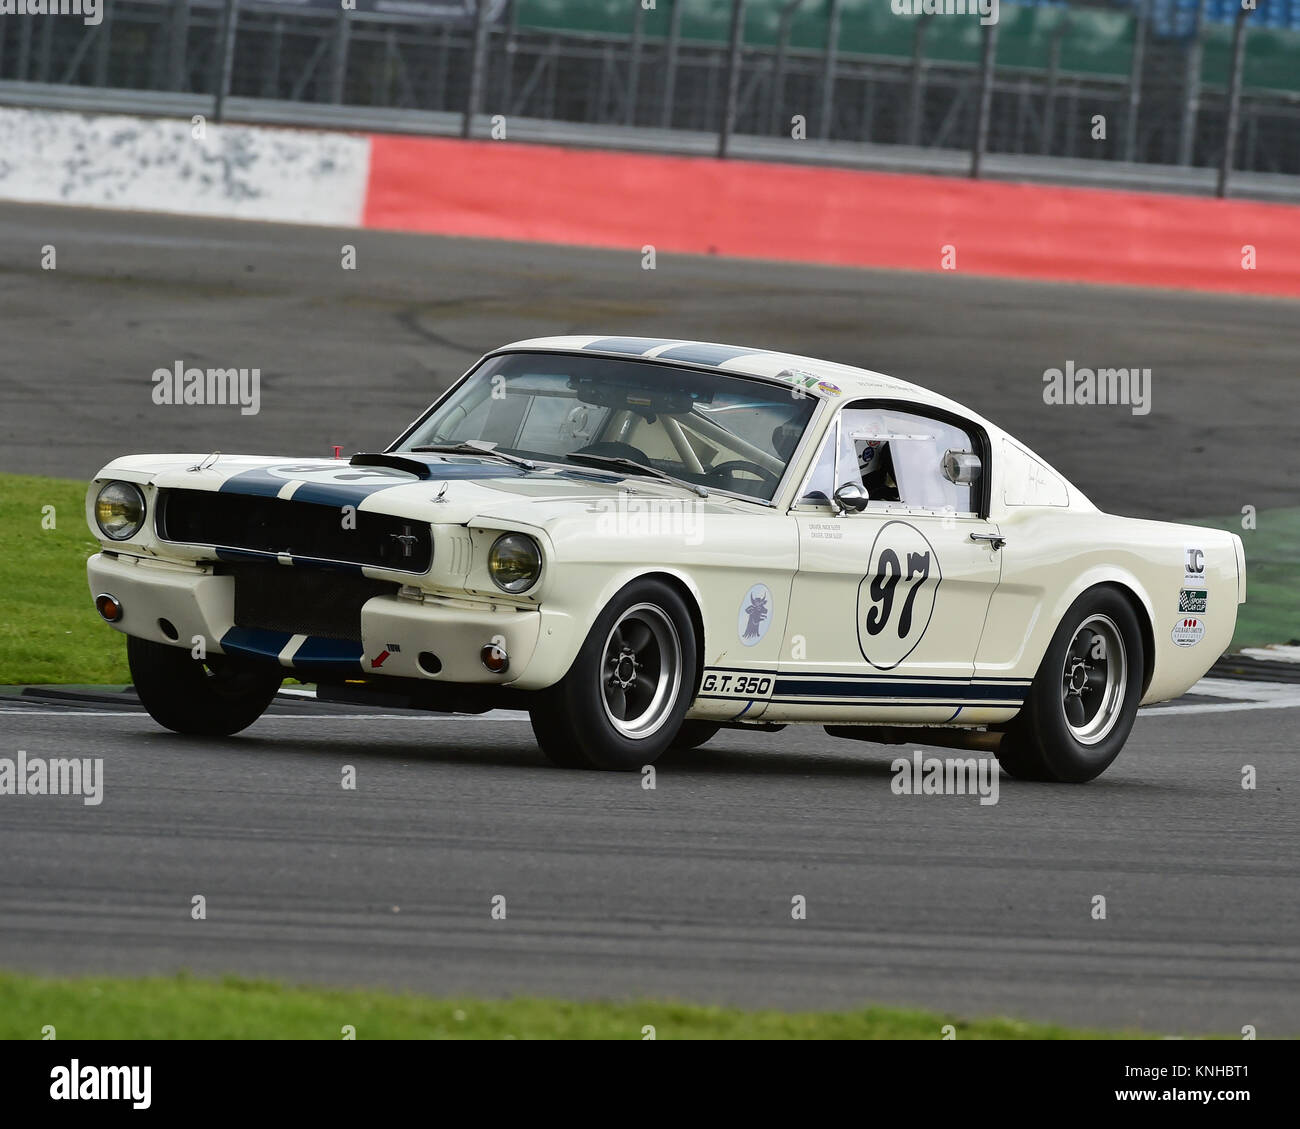 Shelby Gt Coupe: Shelby Gt350 Stock Photos & Shelby Gt350 Stock Images